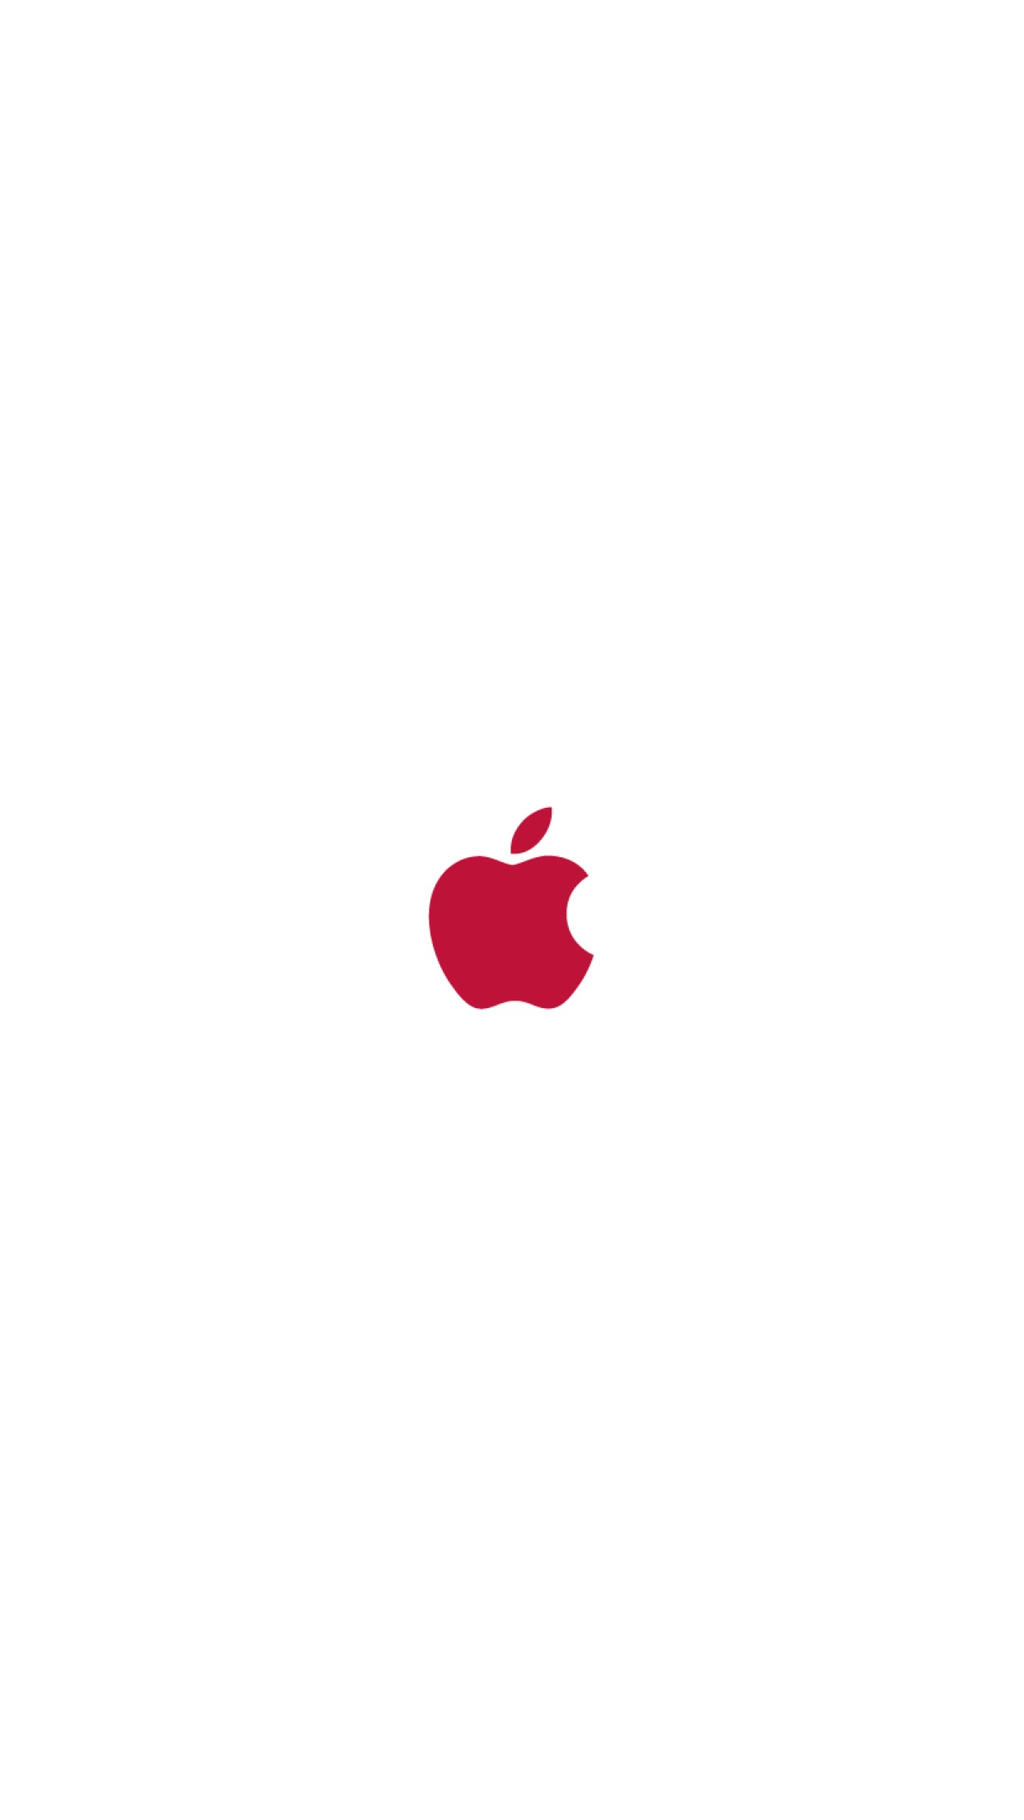 apple (red) wallpapergvc123 on deviantart